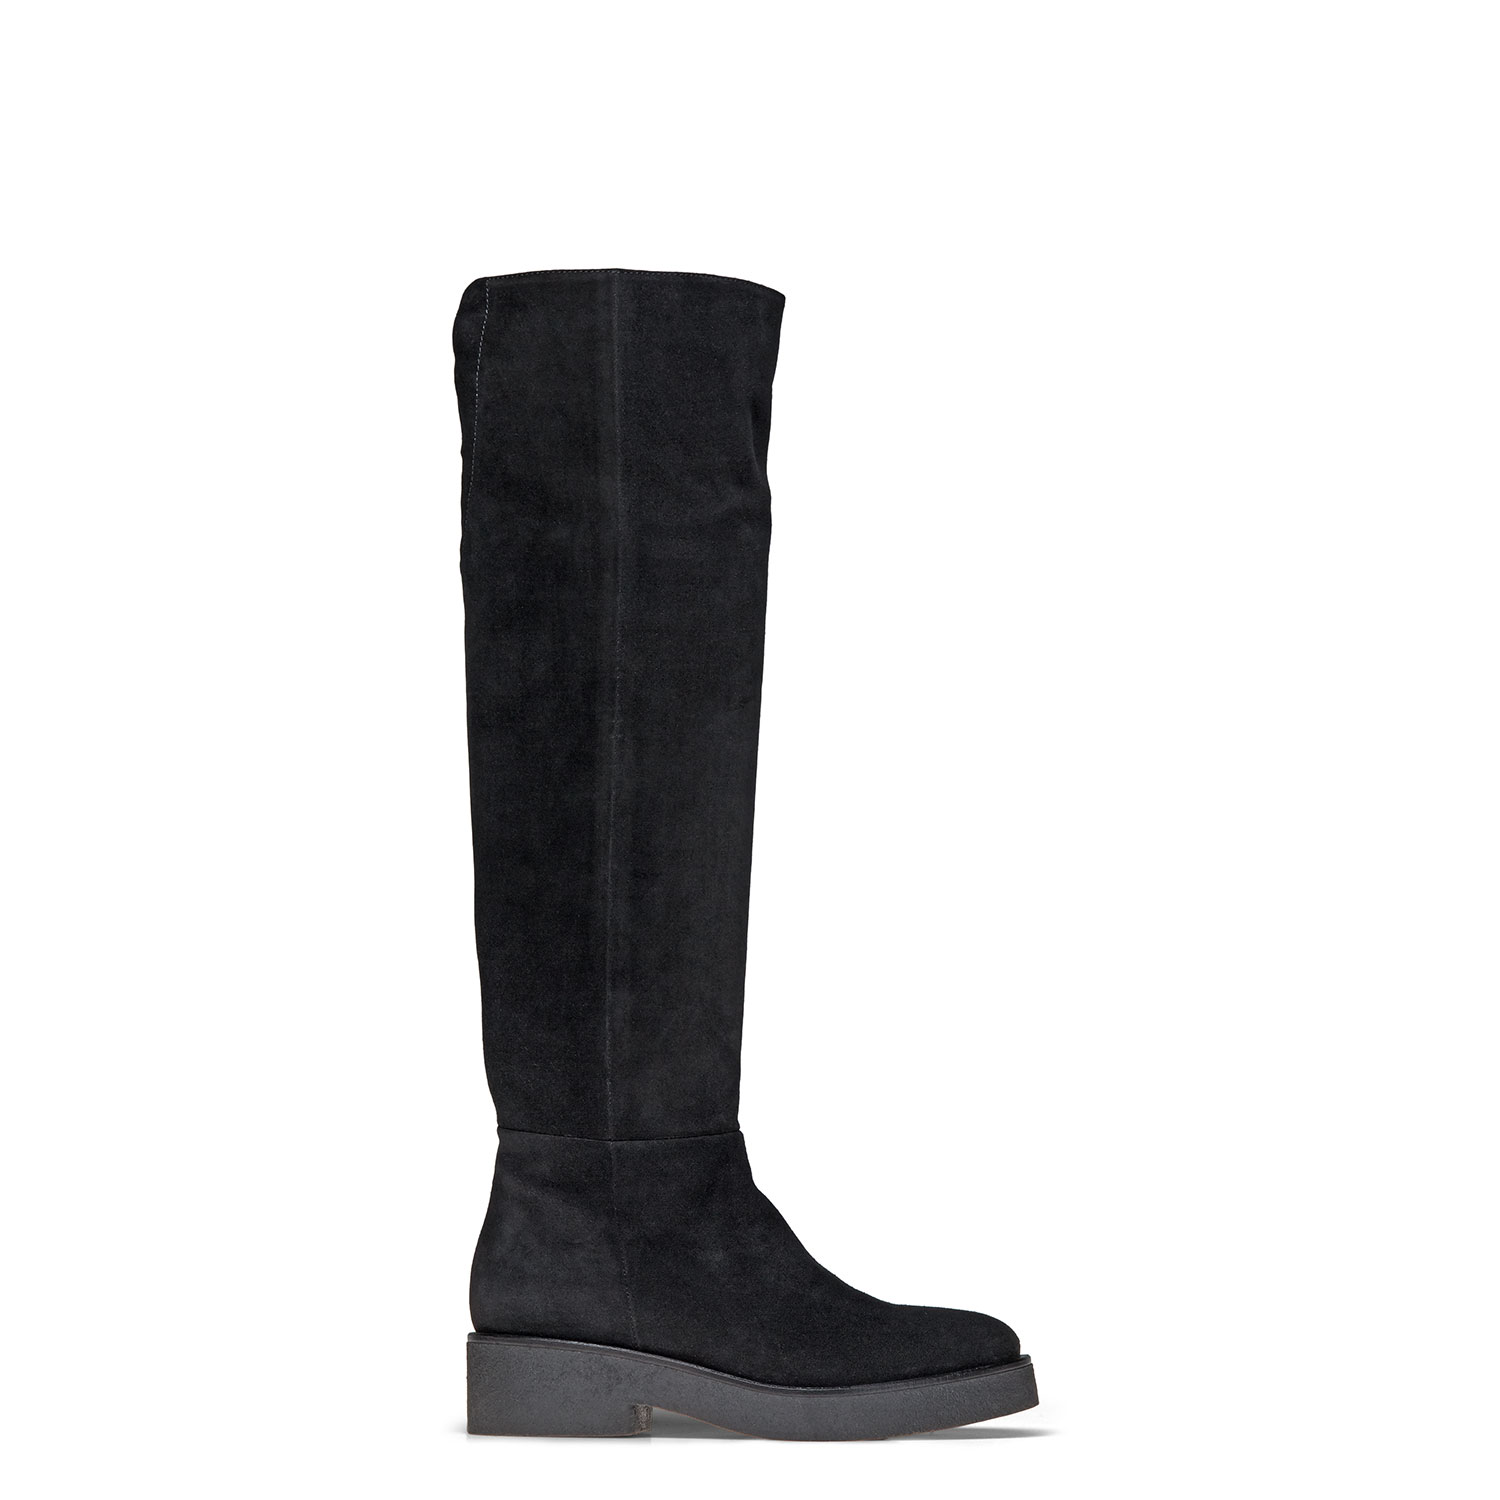 Women's high boots CARLO PAZOLINI TO-X3050-1